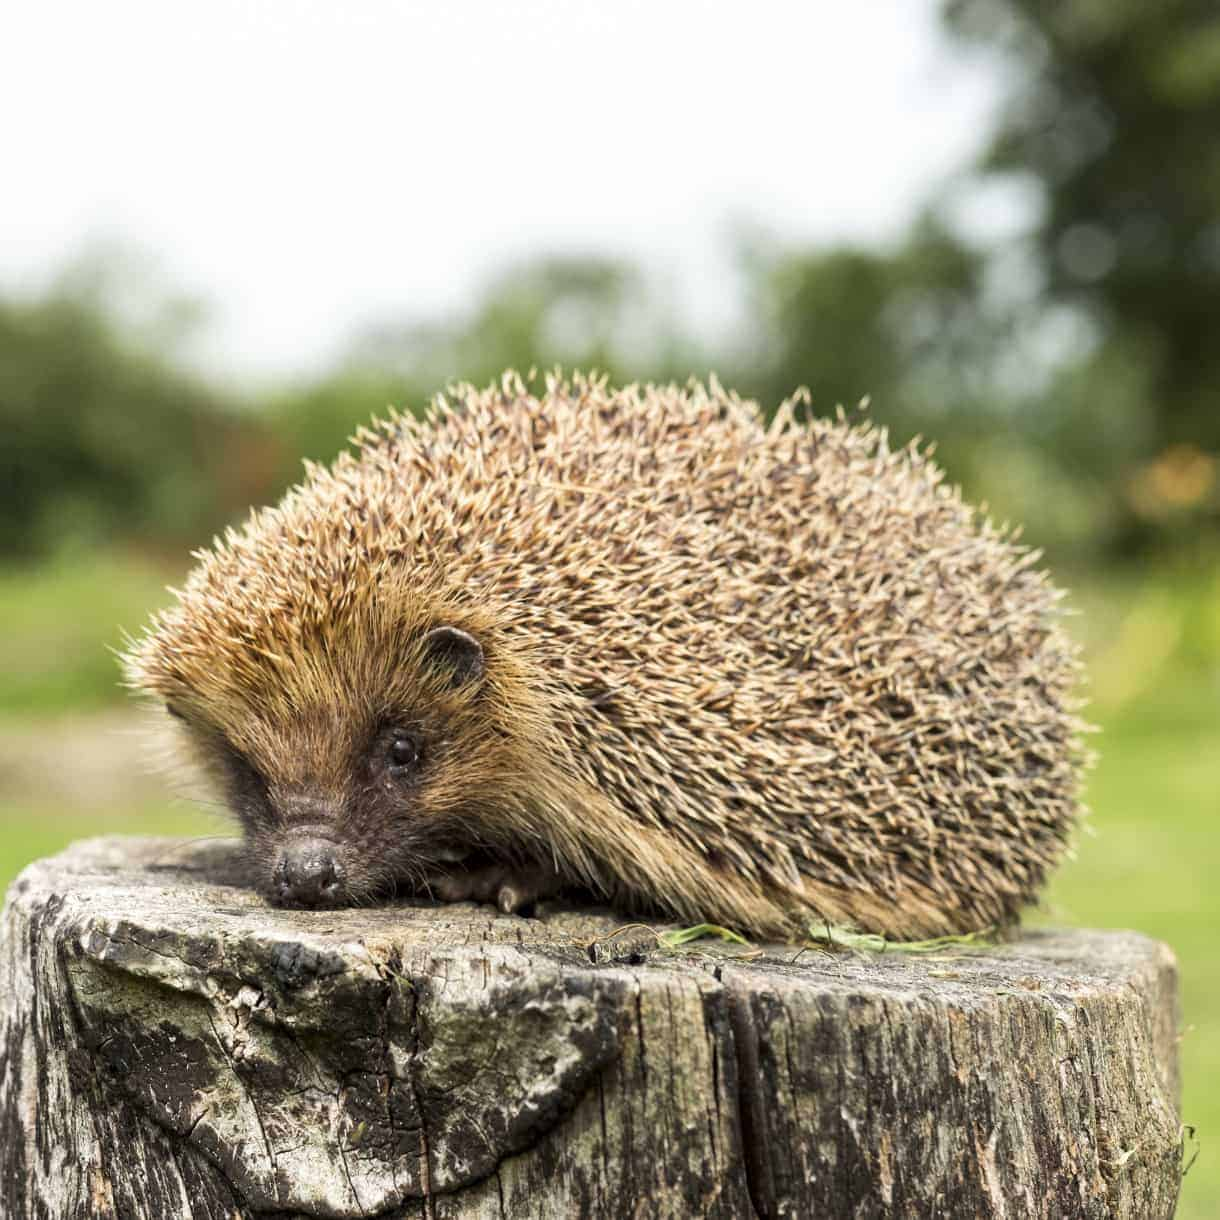 Hedgehogs_2